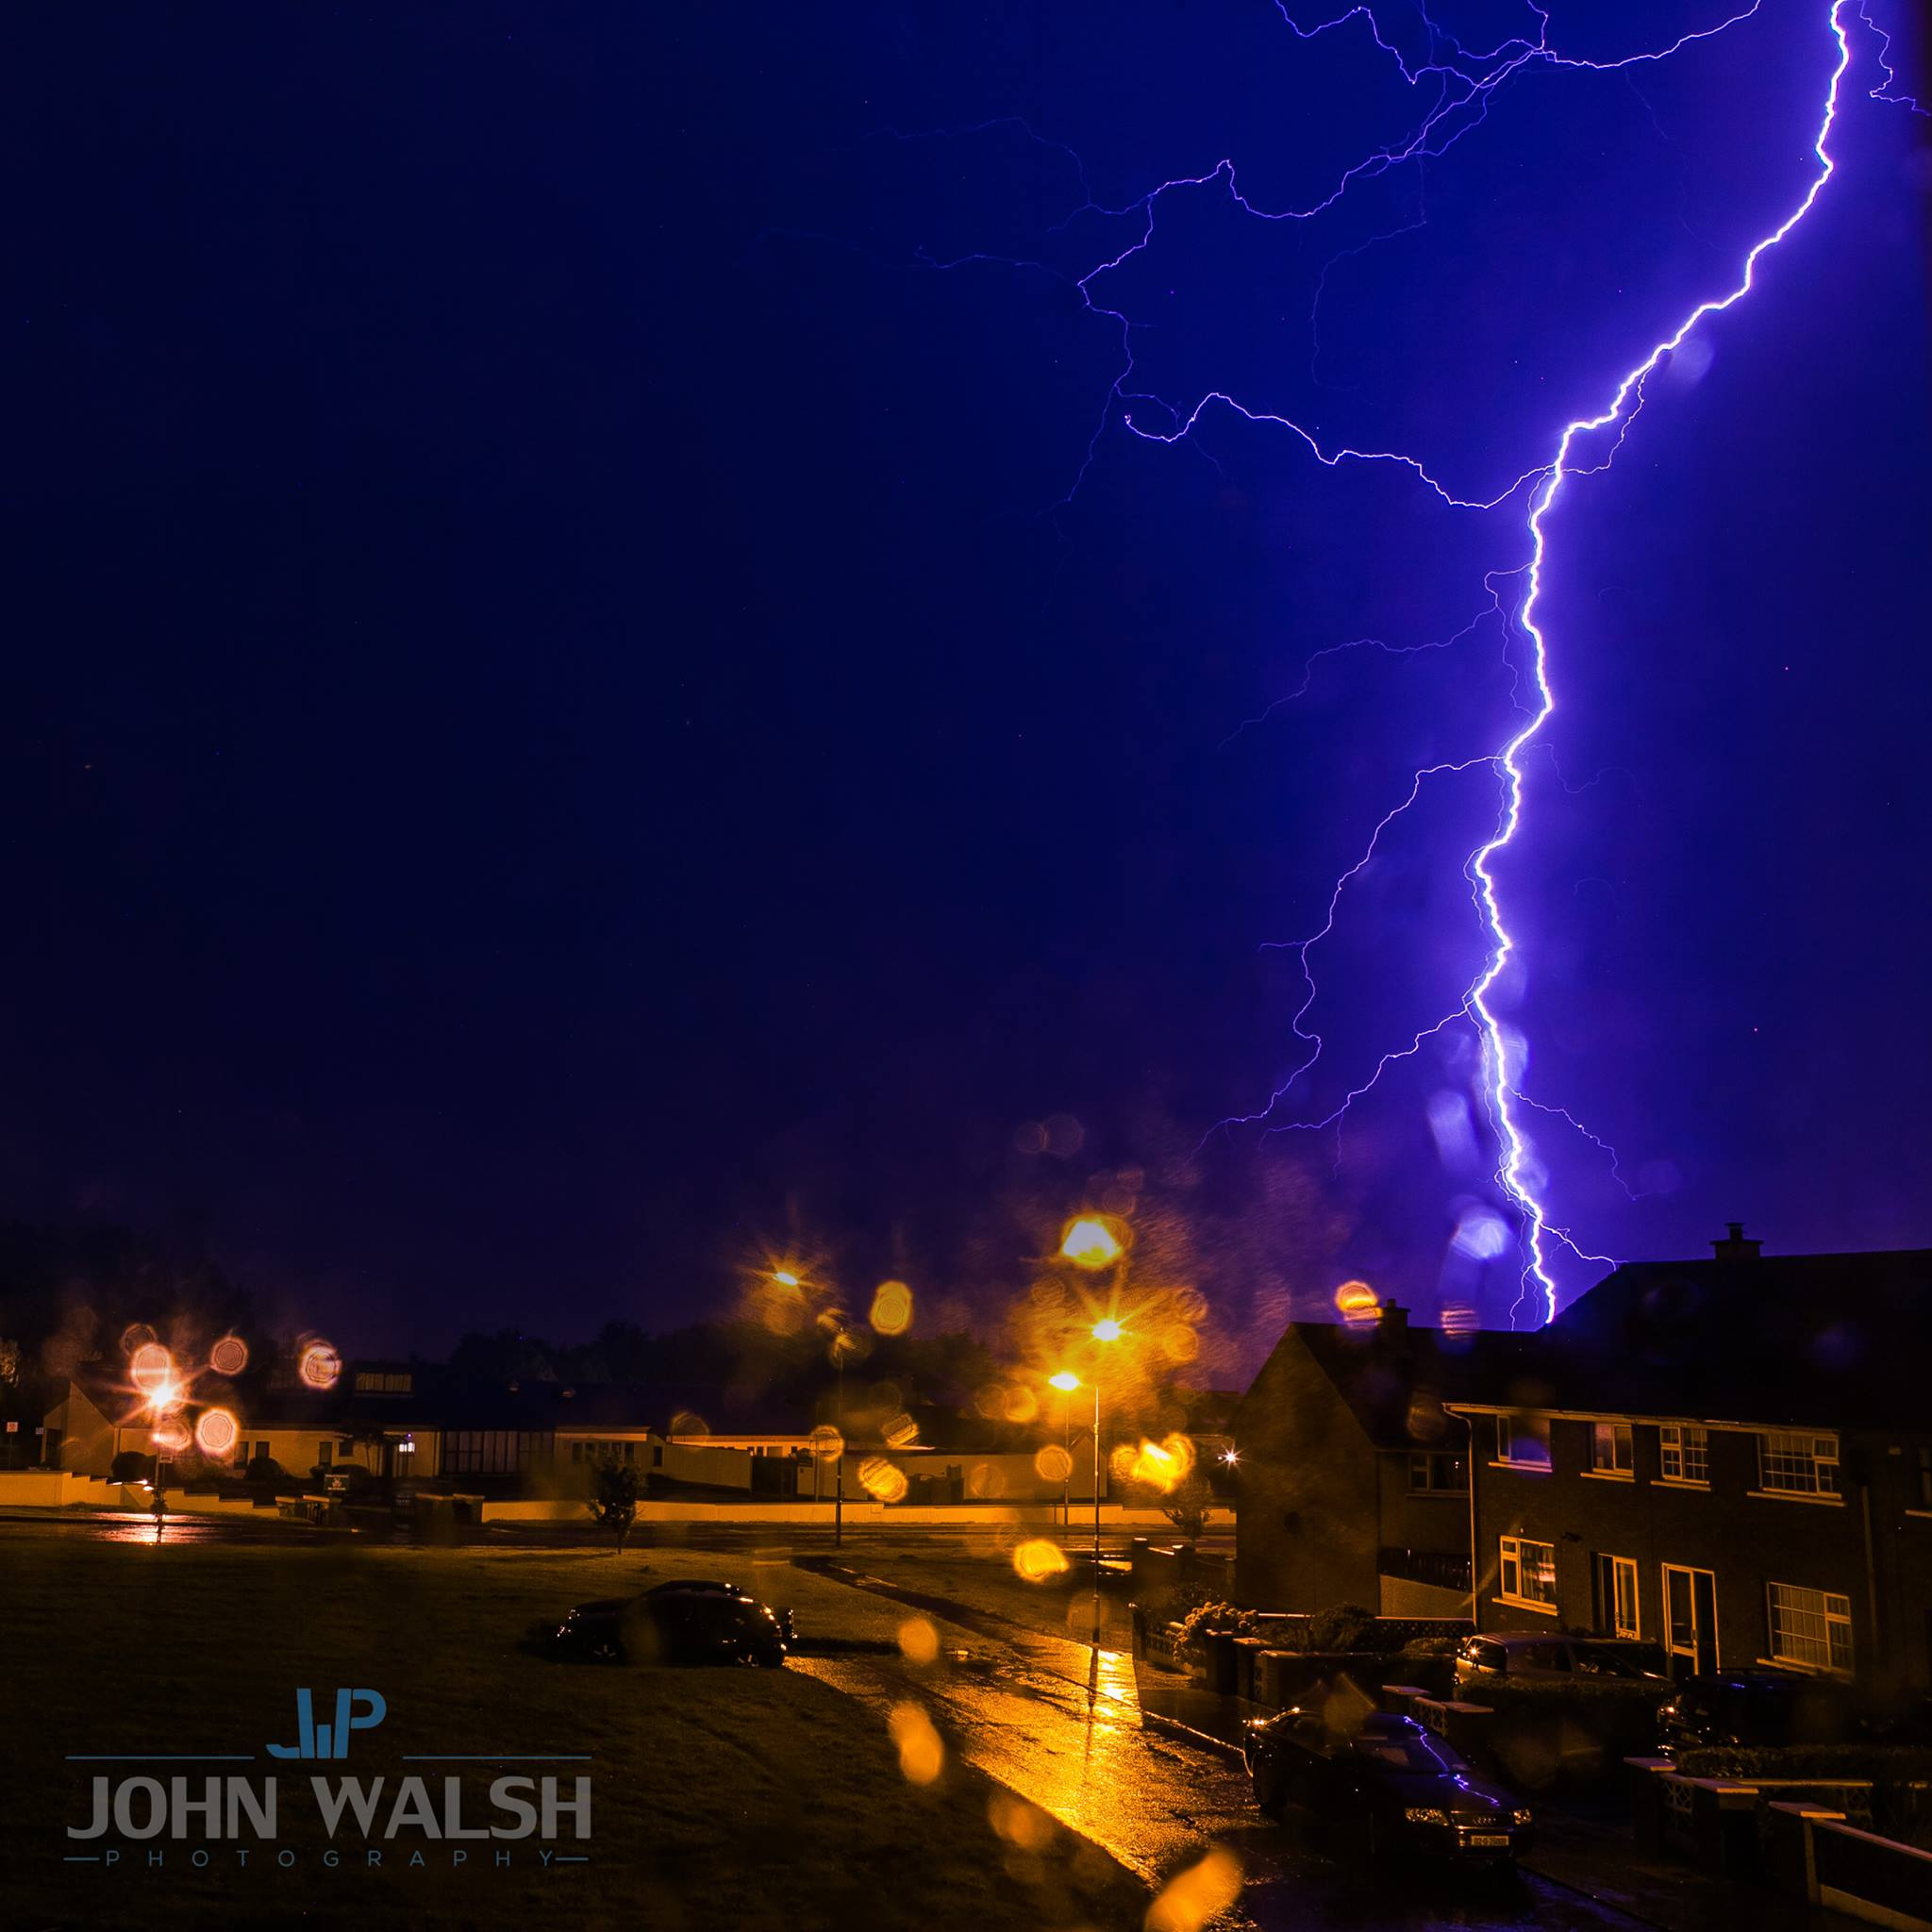 The first one was captured by photographer john walsh who spotted some lightning hitting the ground near ballybane on the outskirts of galway city